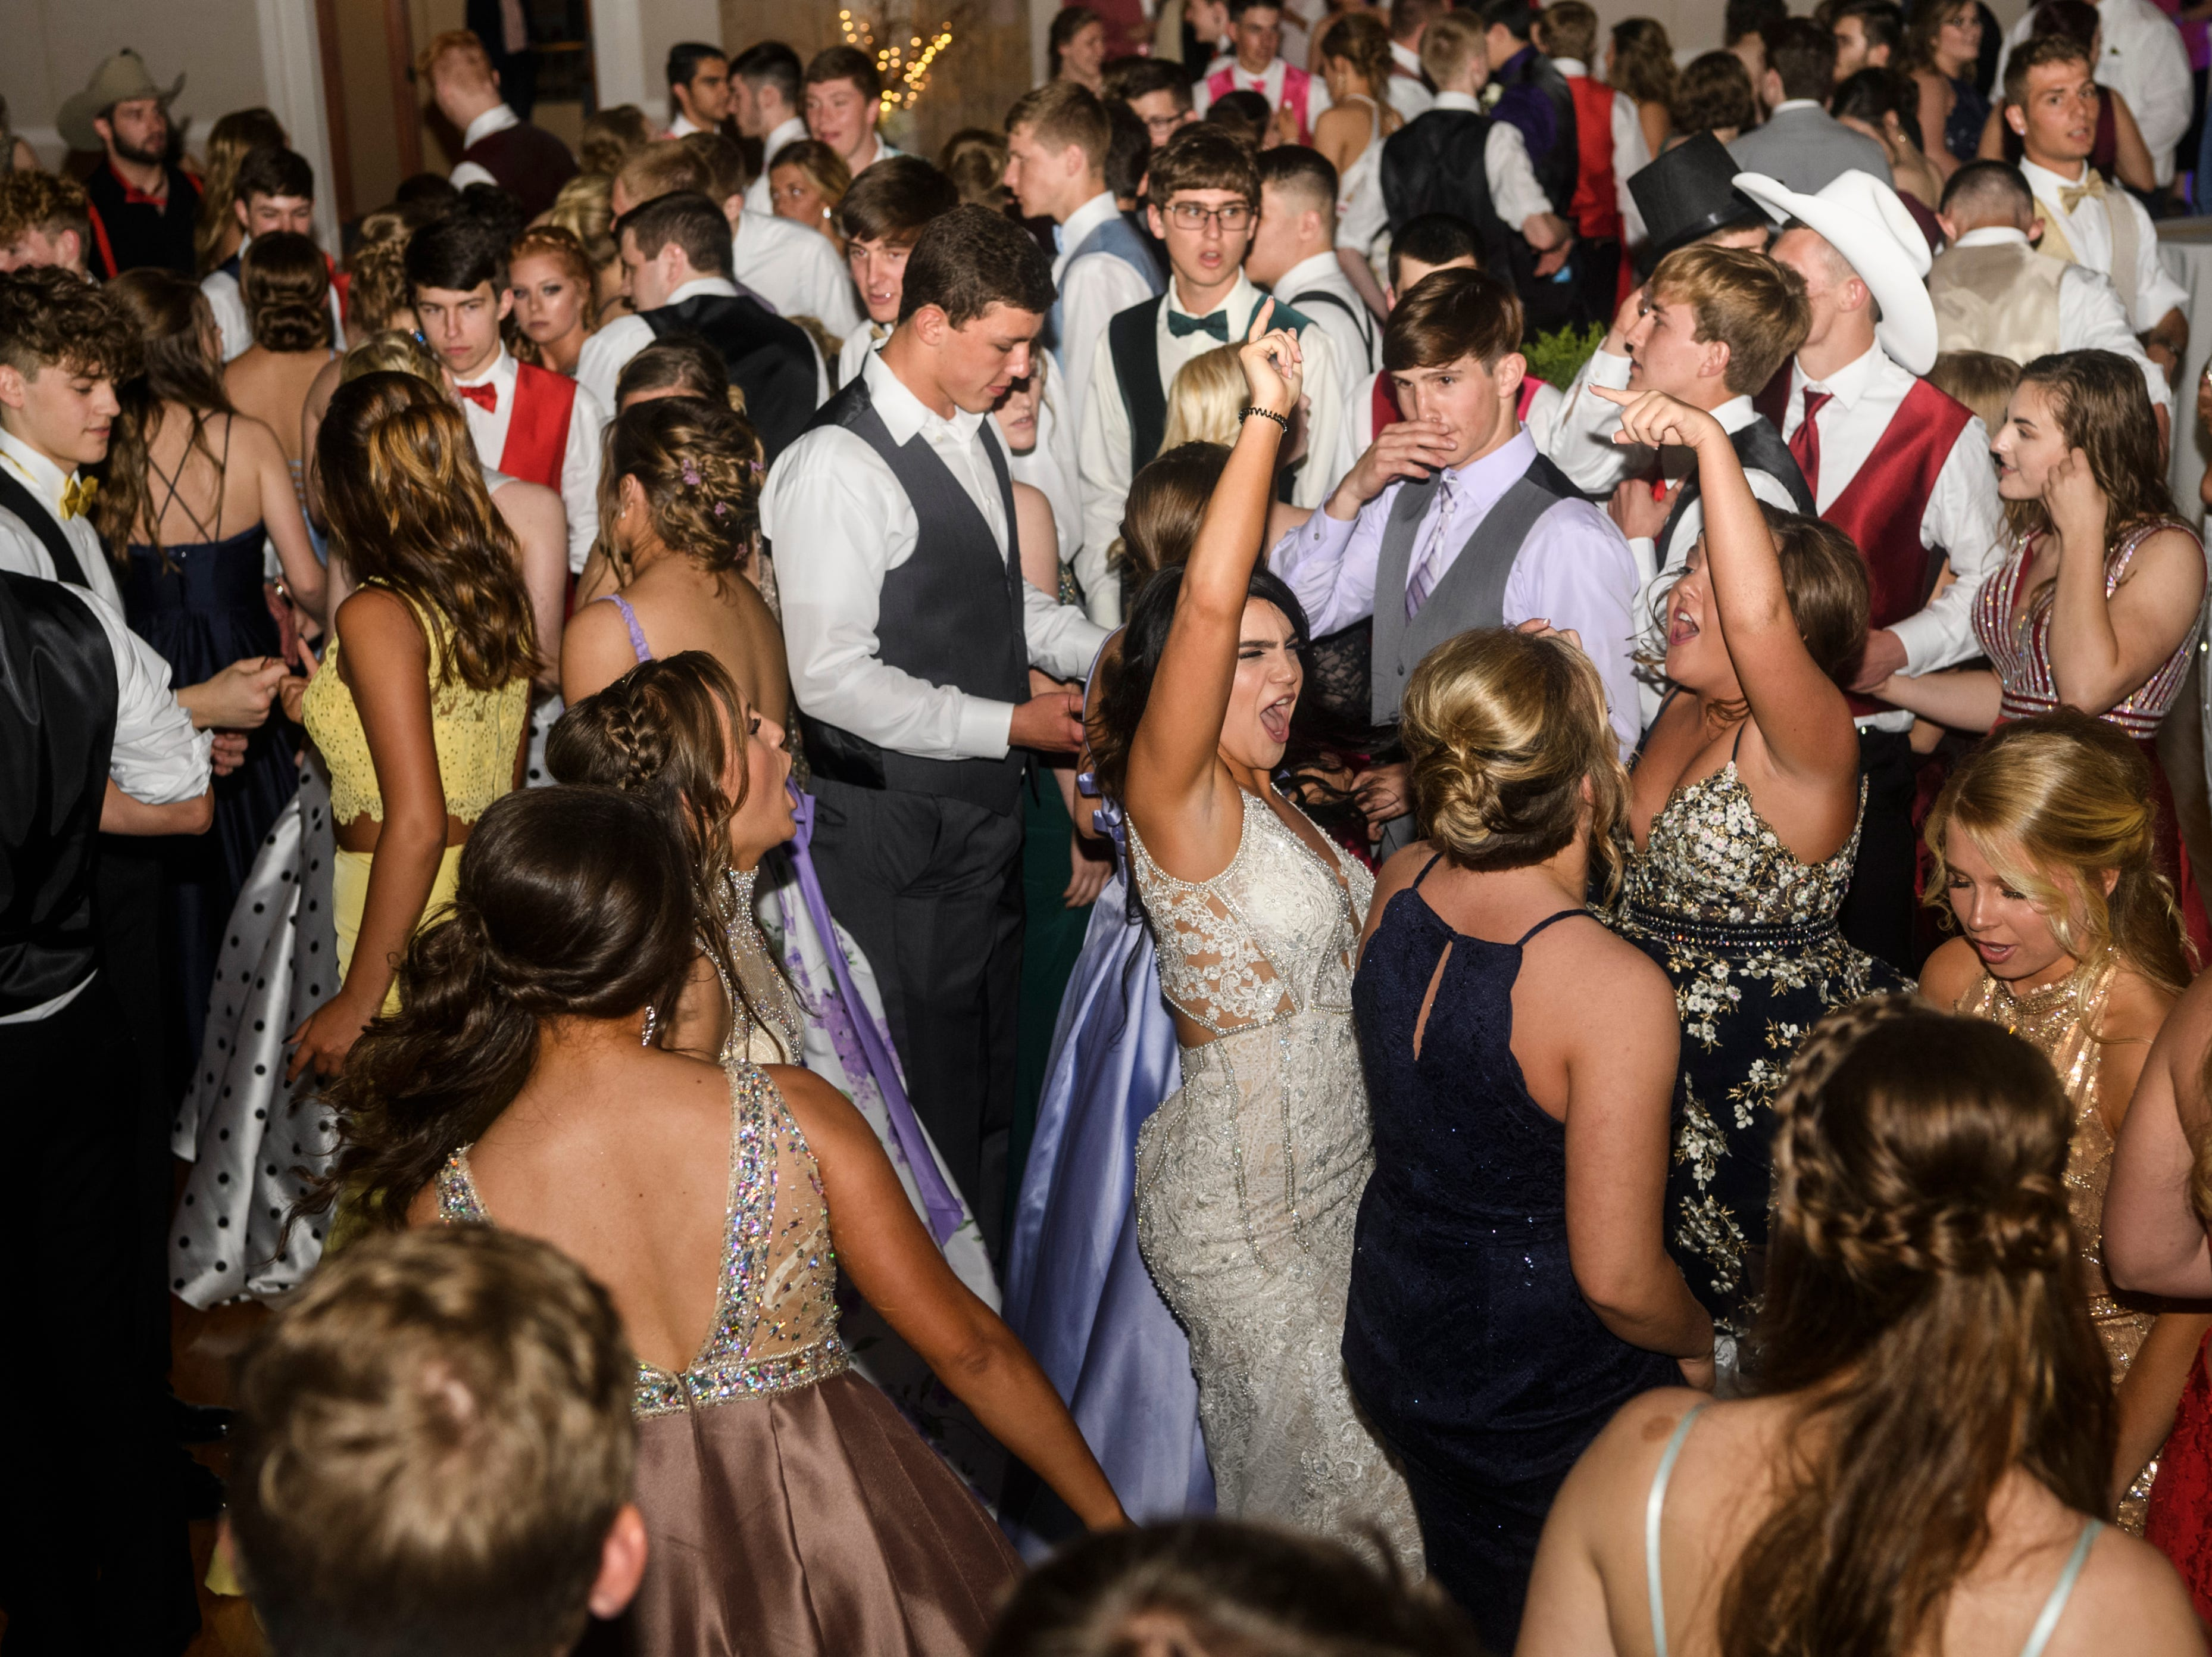 Students dance the night away during North Posey's prom held at the Ribeyre Center in New Harmony, Ind., Saturday, May 4, 2019.